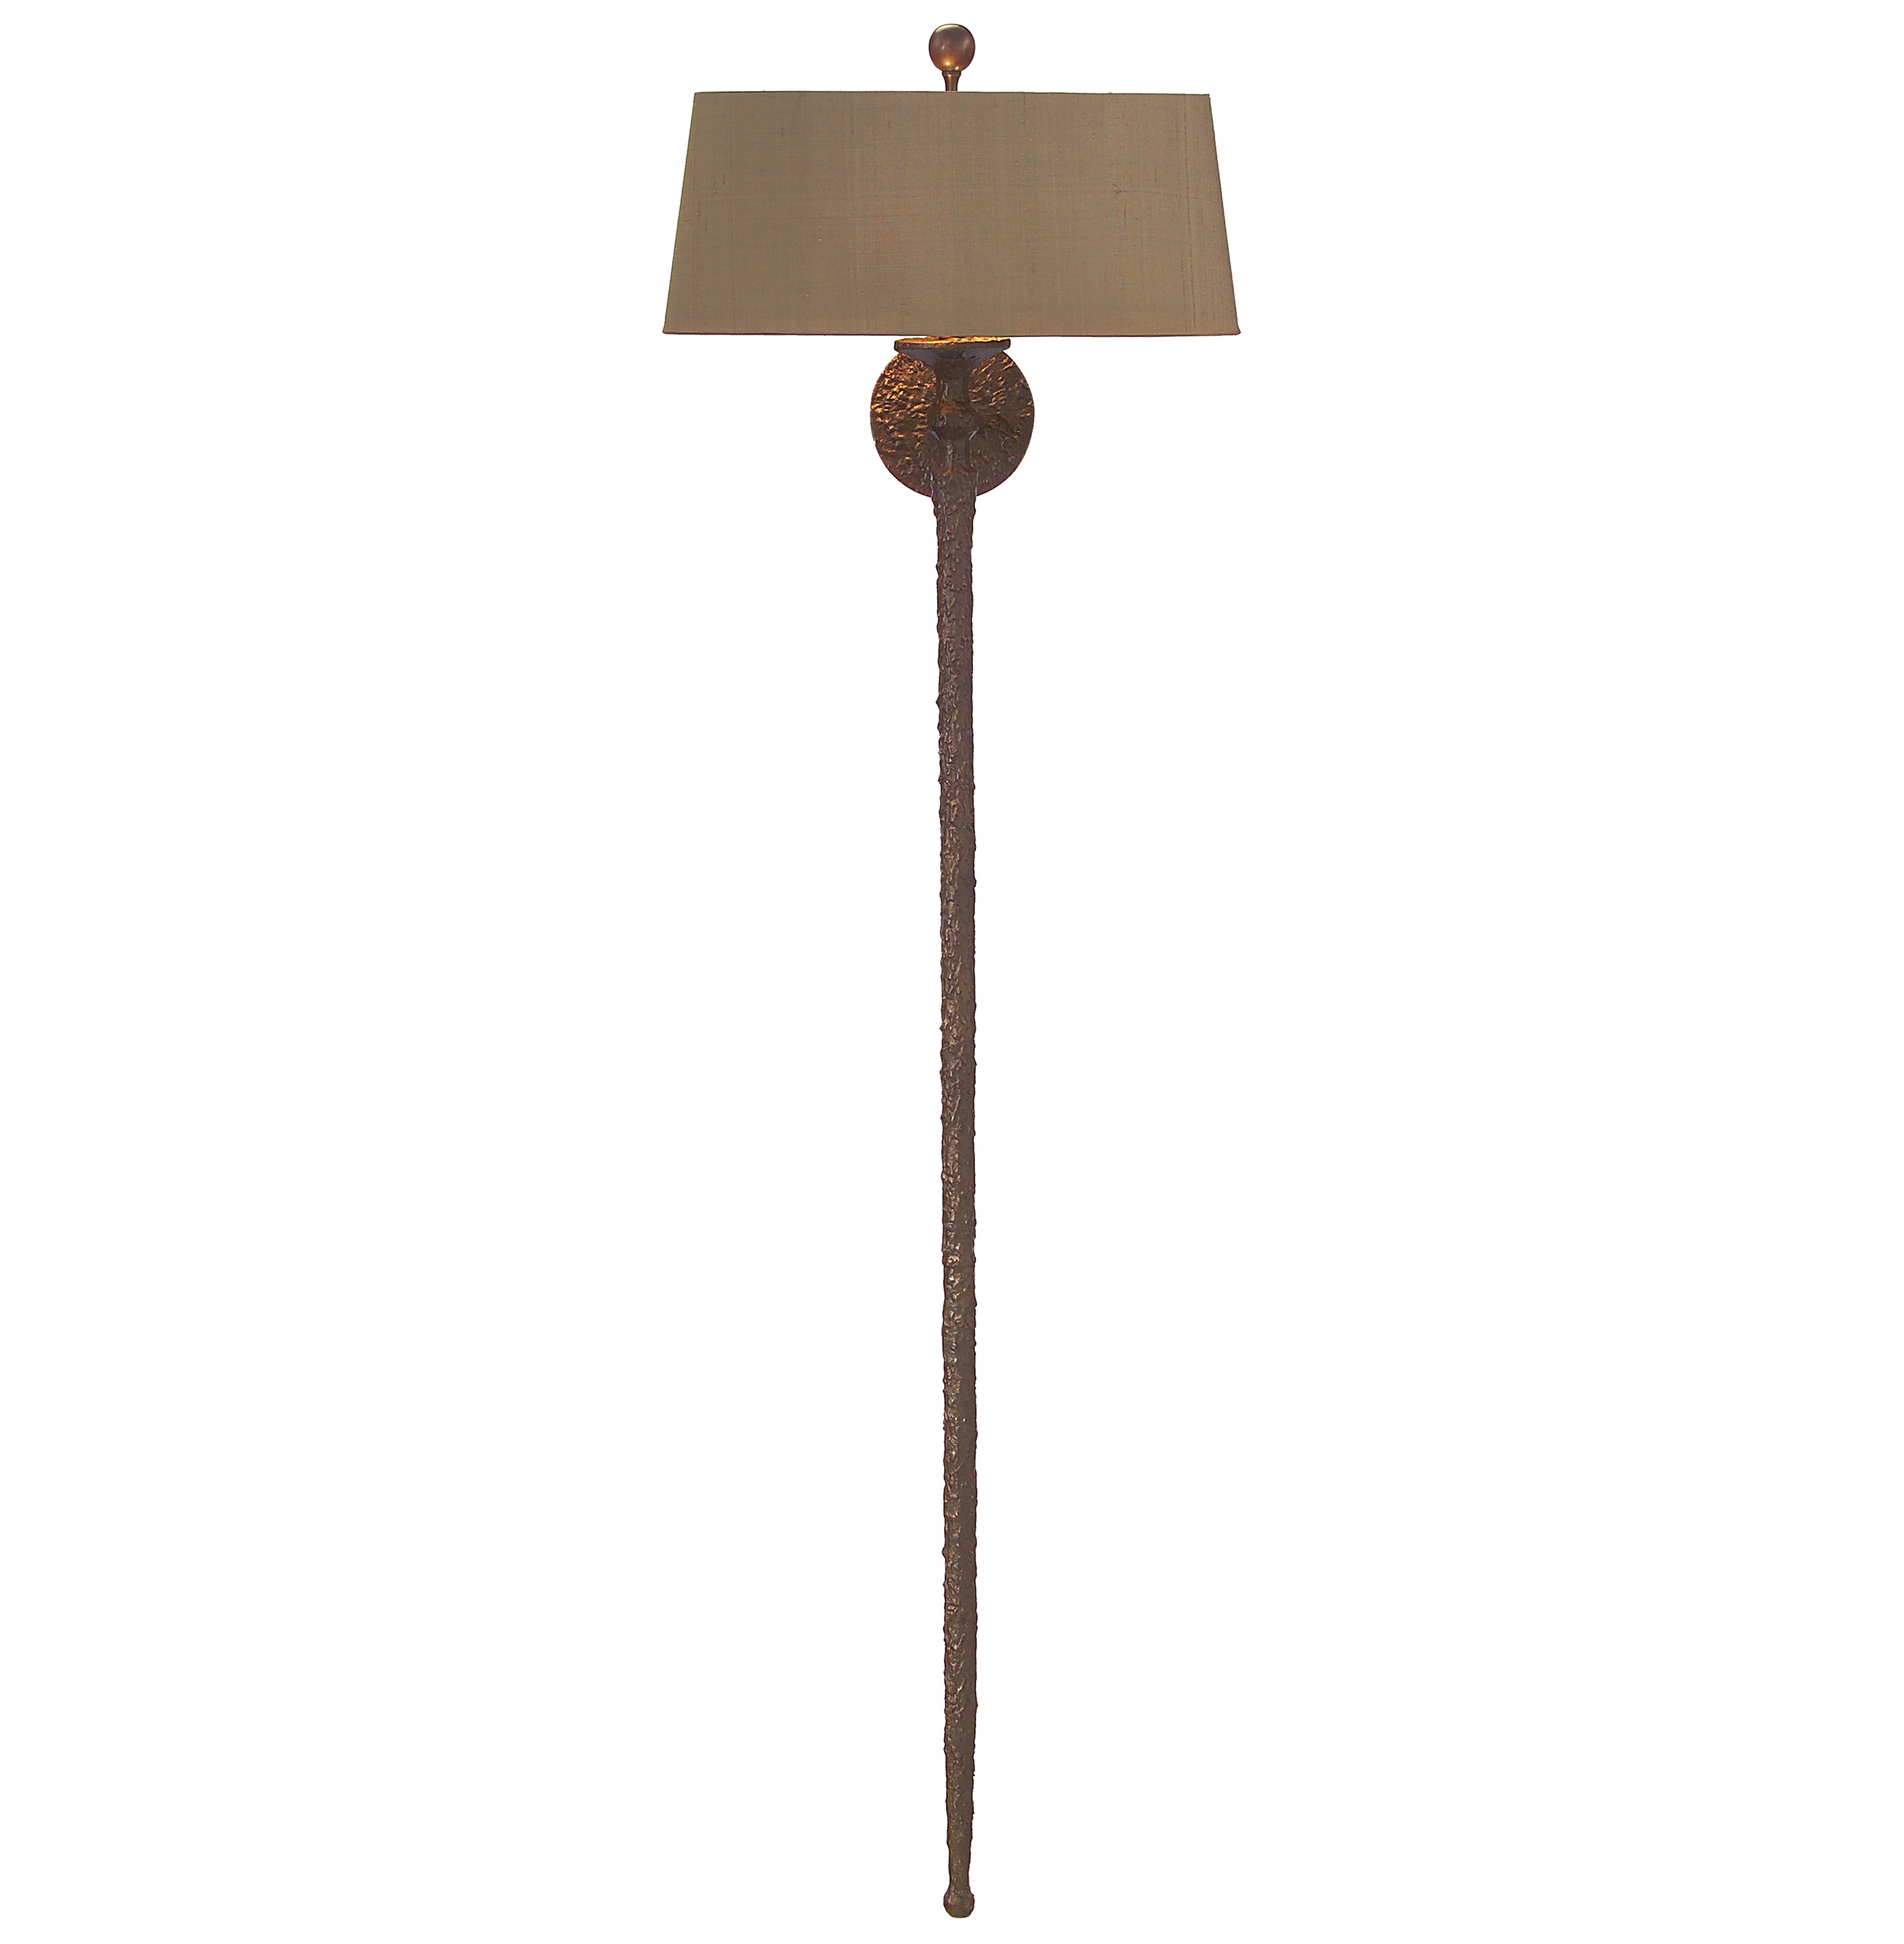 Henriette French Global Antique Bronze Wall Sconce